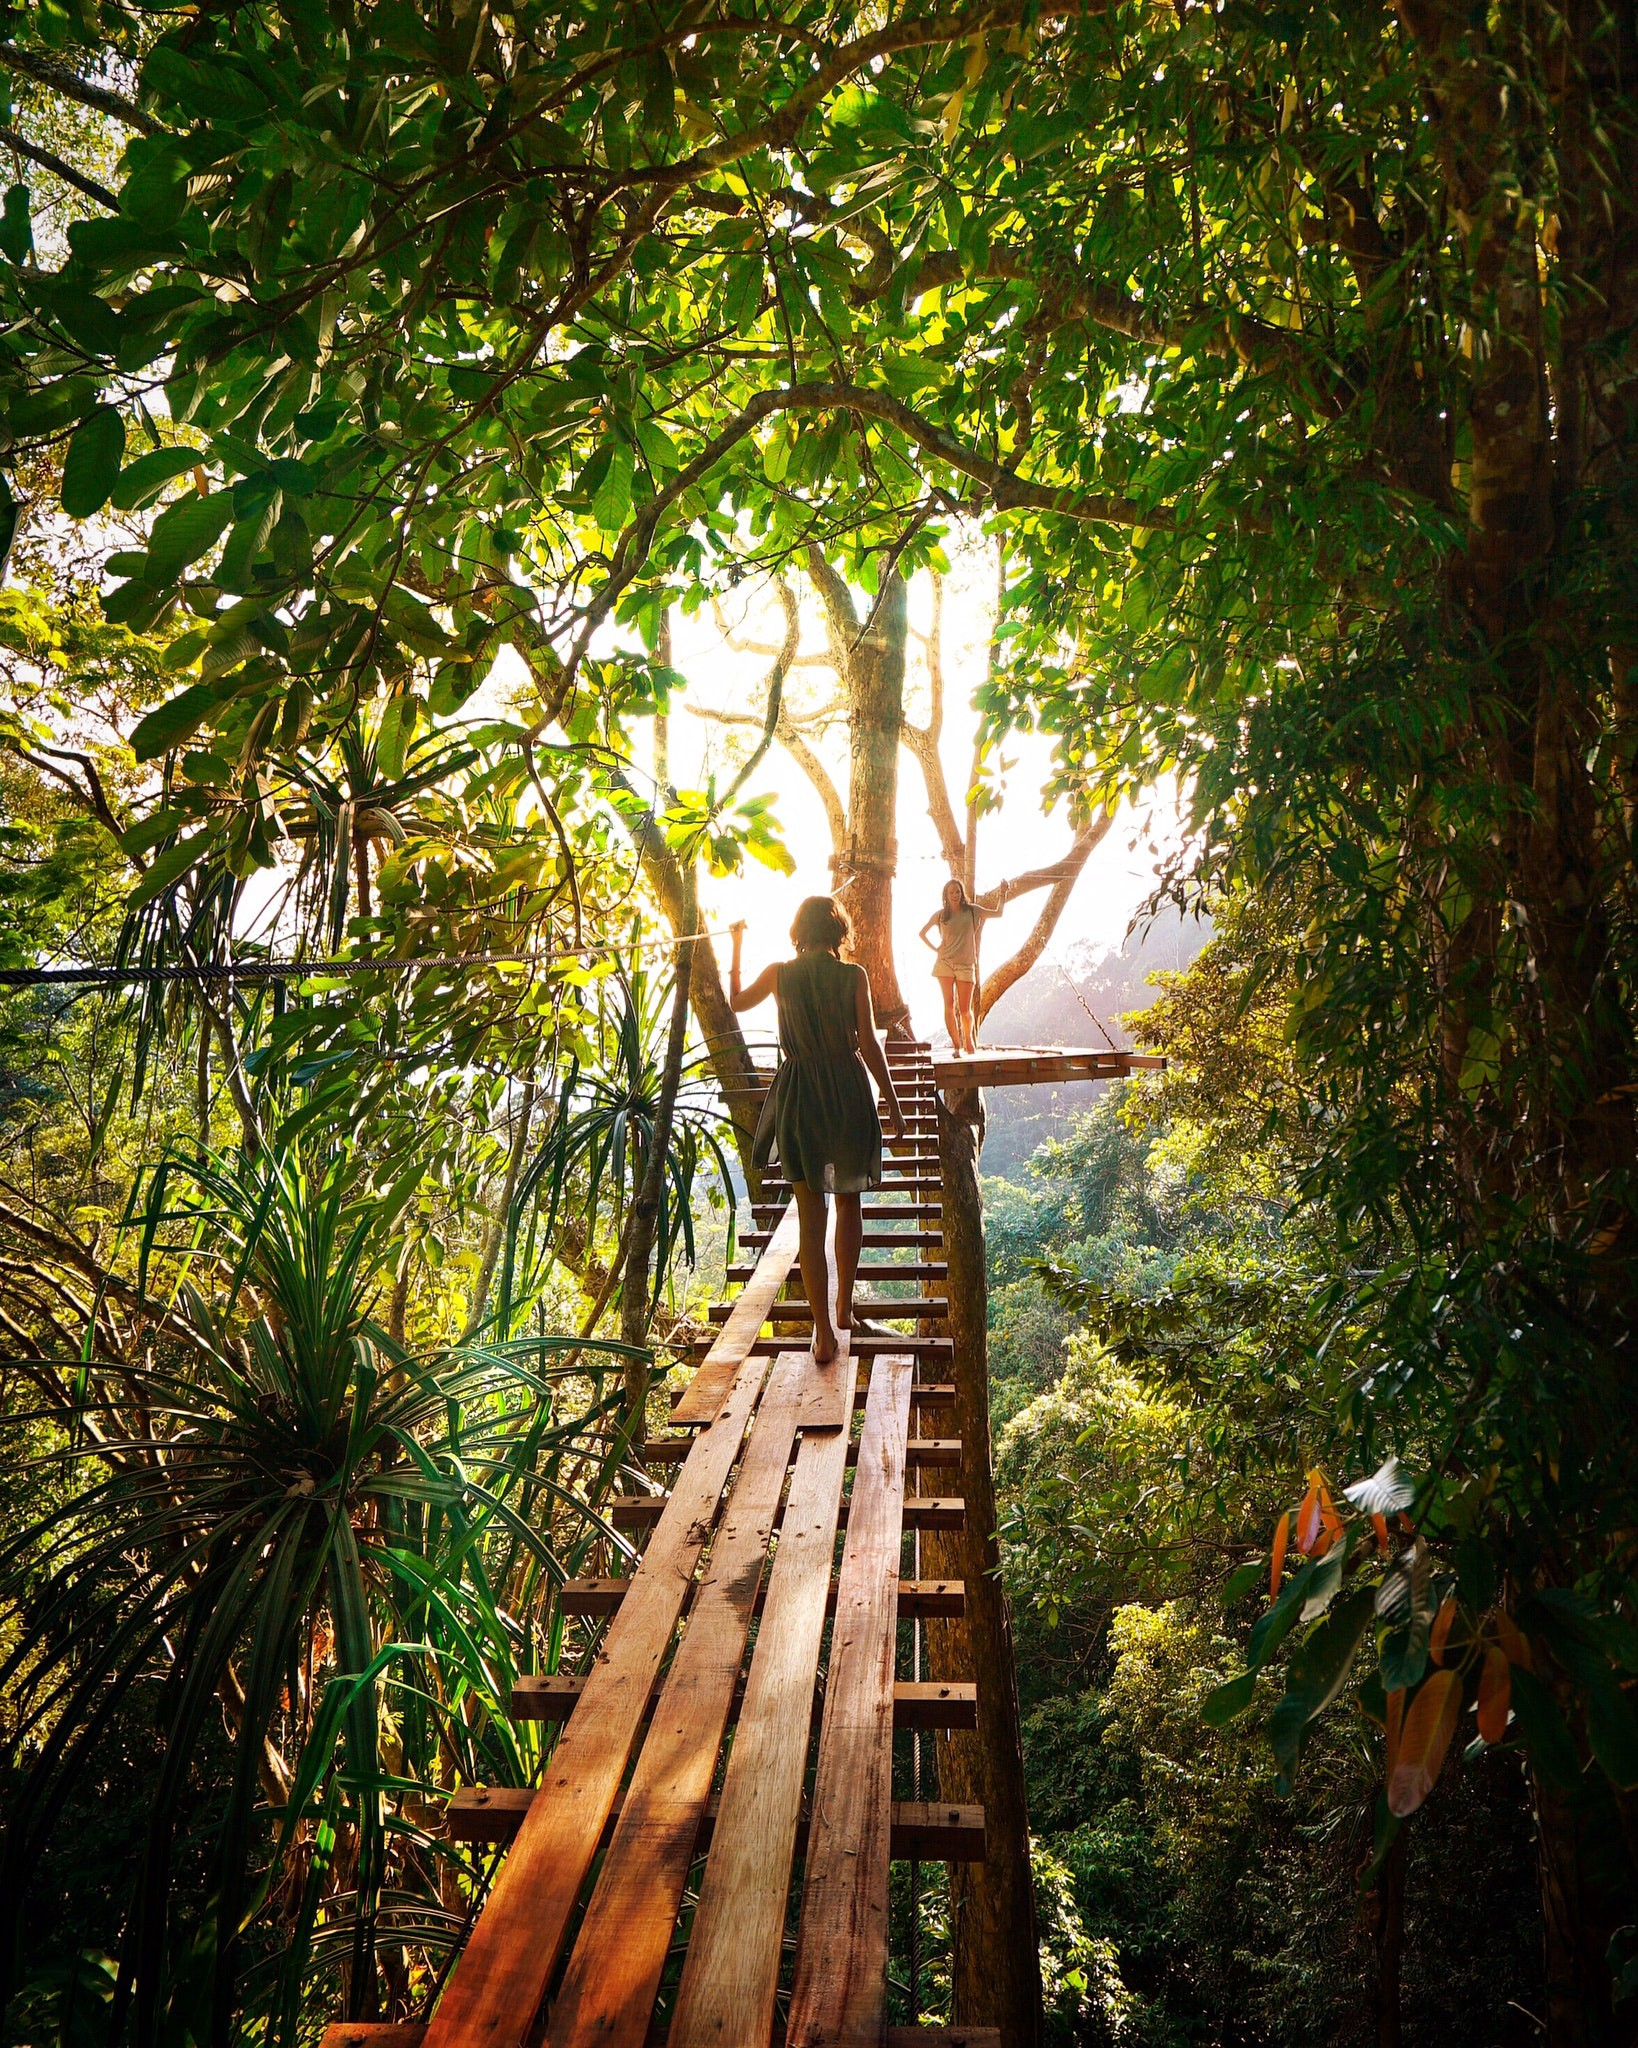 Women walk a wooden planked bridge high up in the tree tops of the jungle.